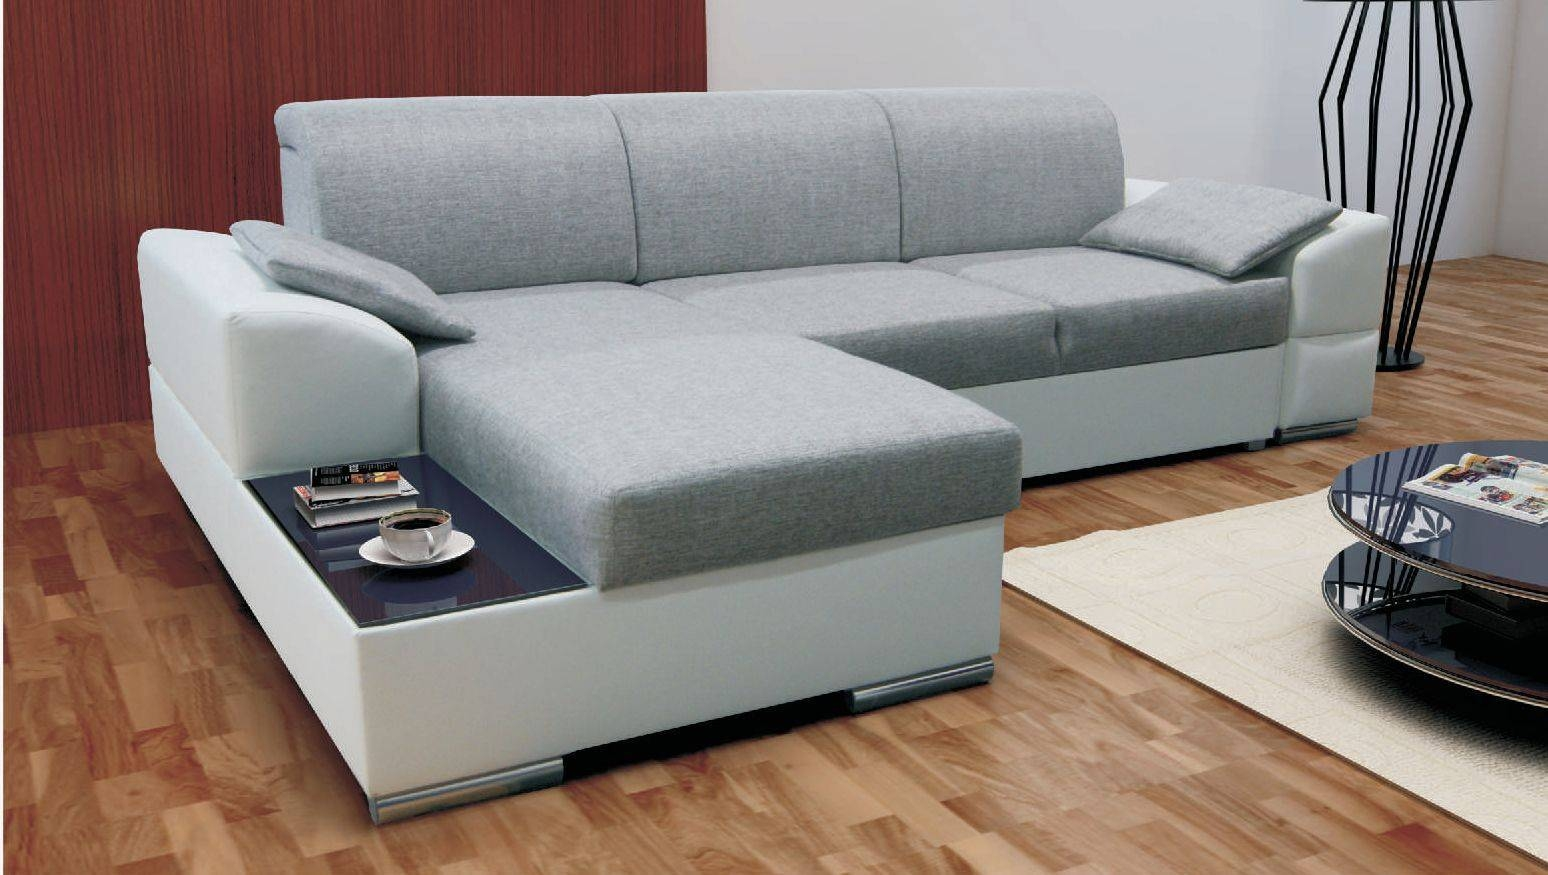 Sofas Center : Unusual Corner Sofa Withrage Picture Design Large within Corner Sofa Bed With Storage Ikea (Image 27 of 30)